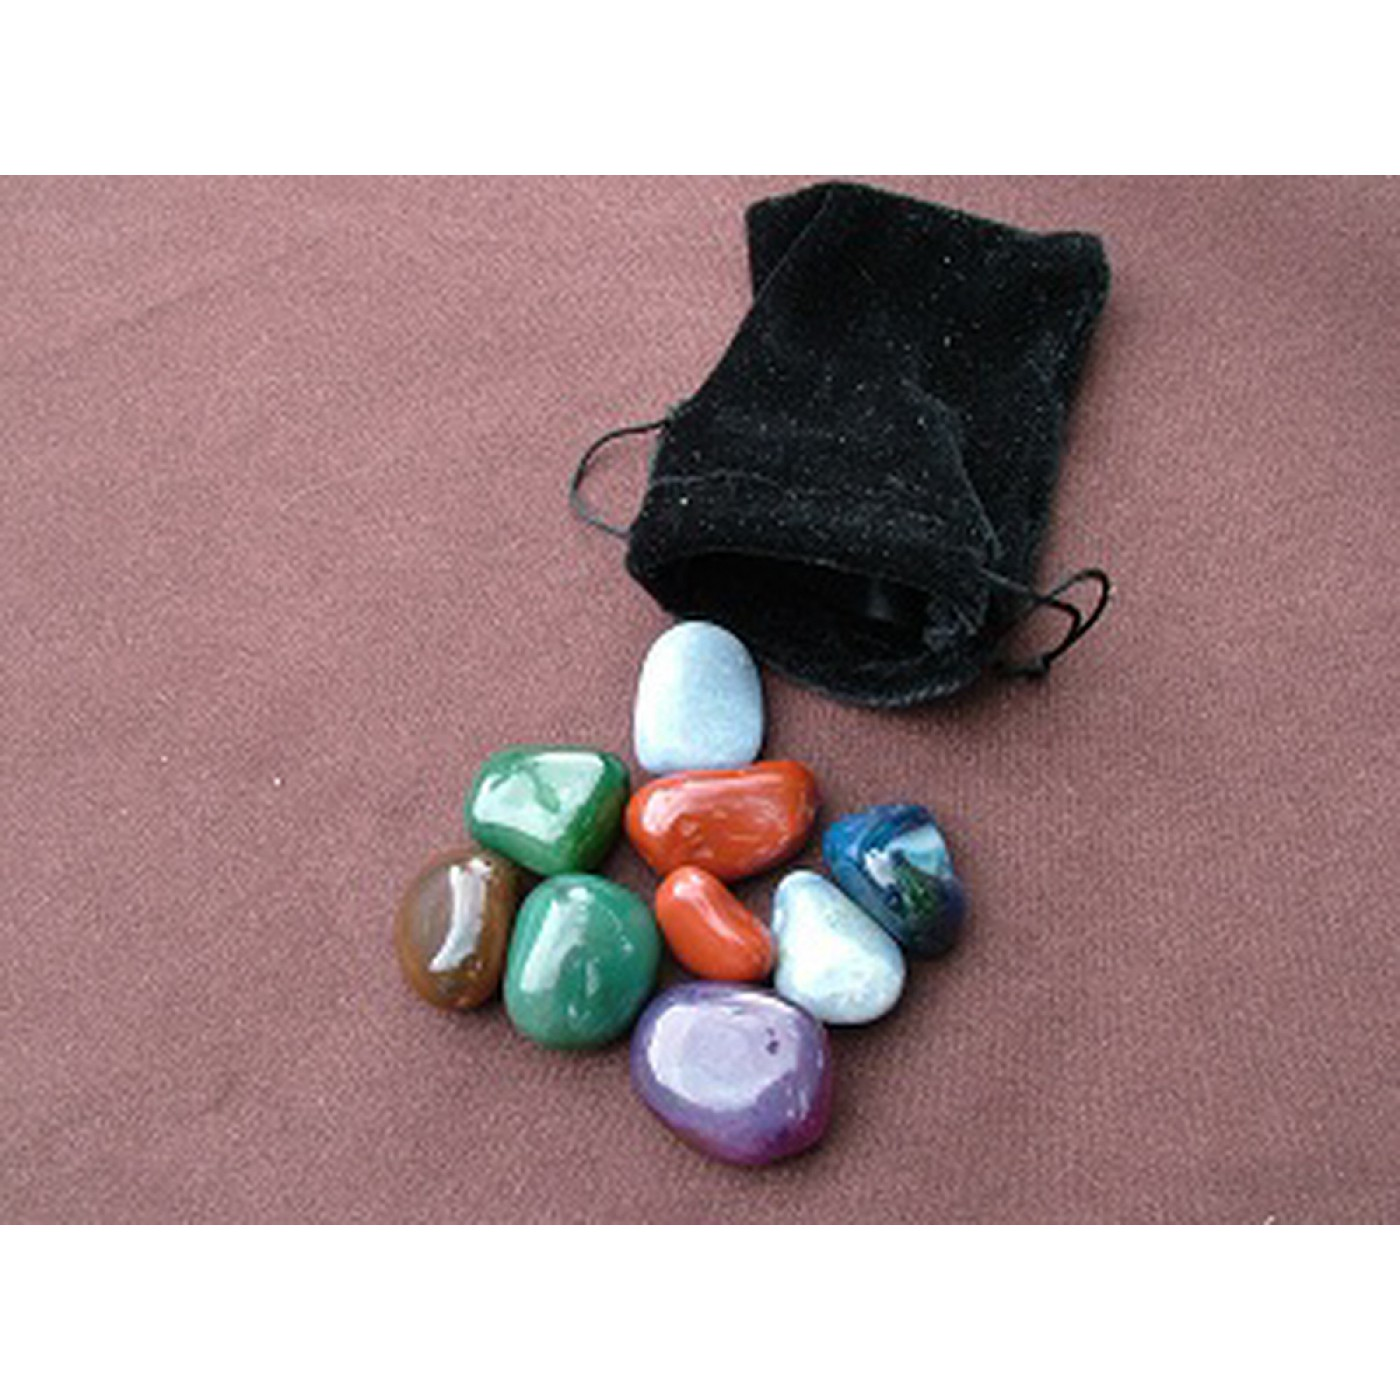 100g bag of mixed Agate Tumblestones in a velvet pouch